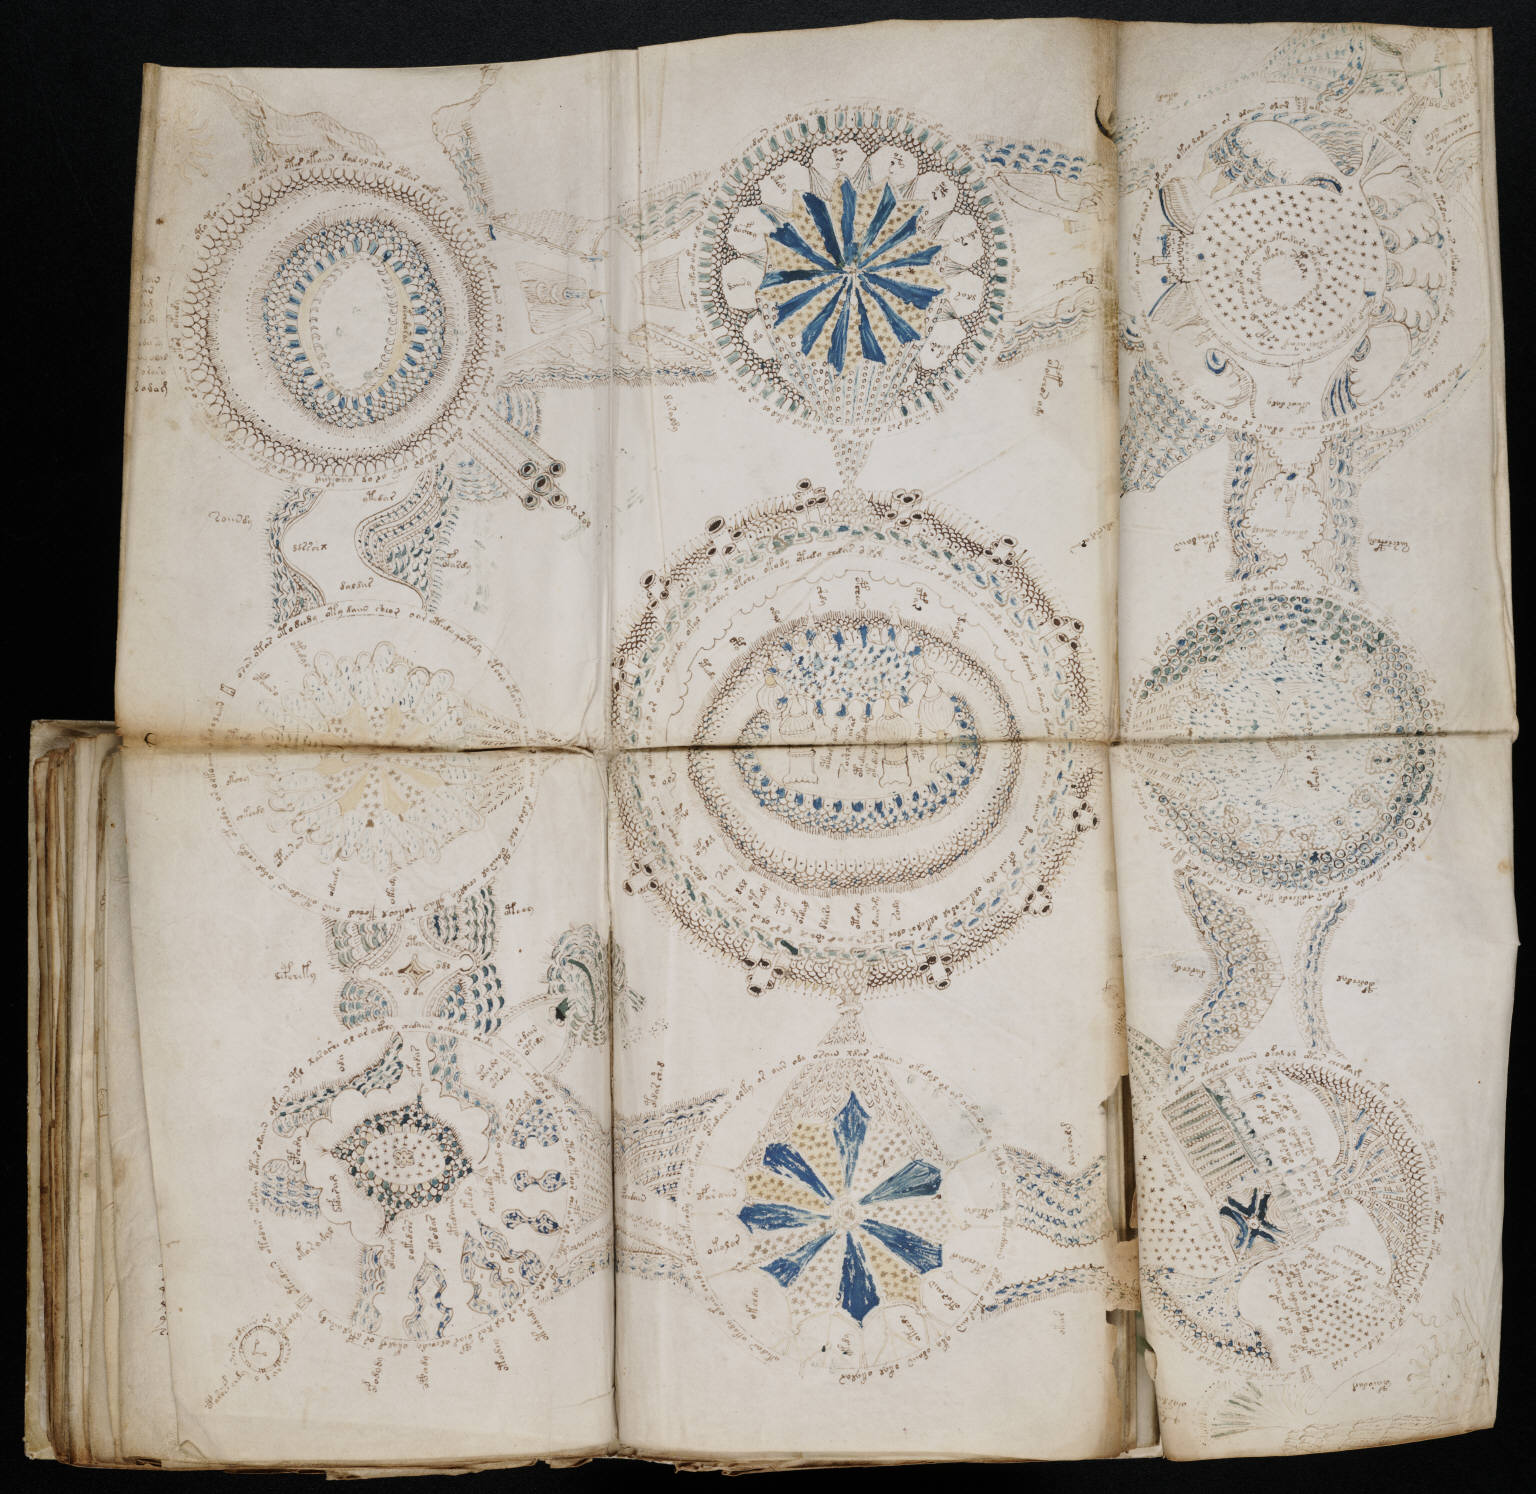 From the Voynich manuscript